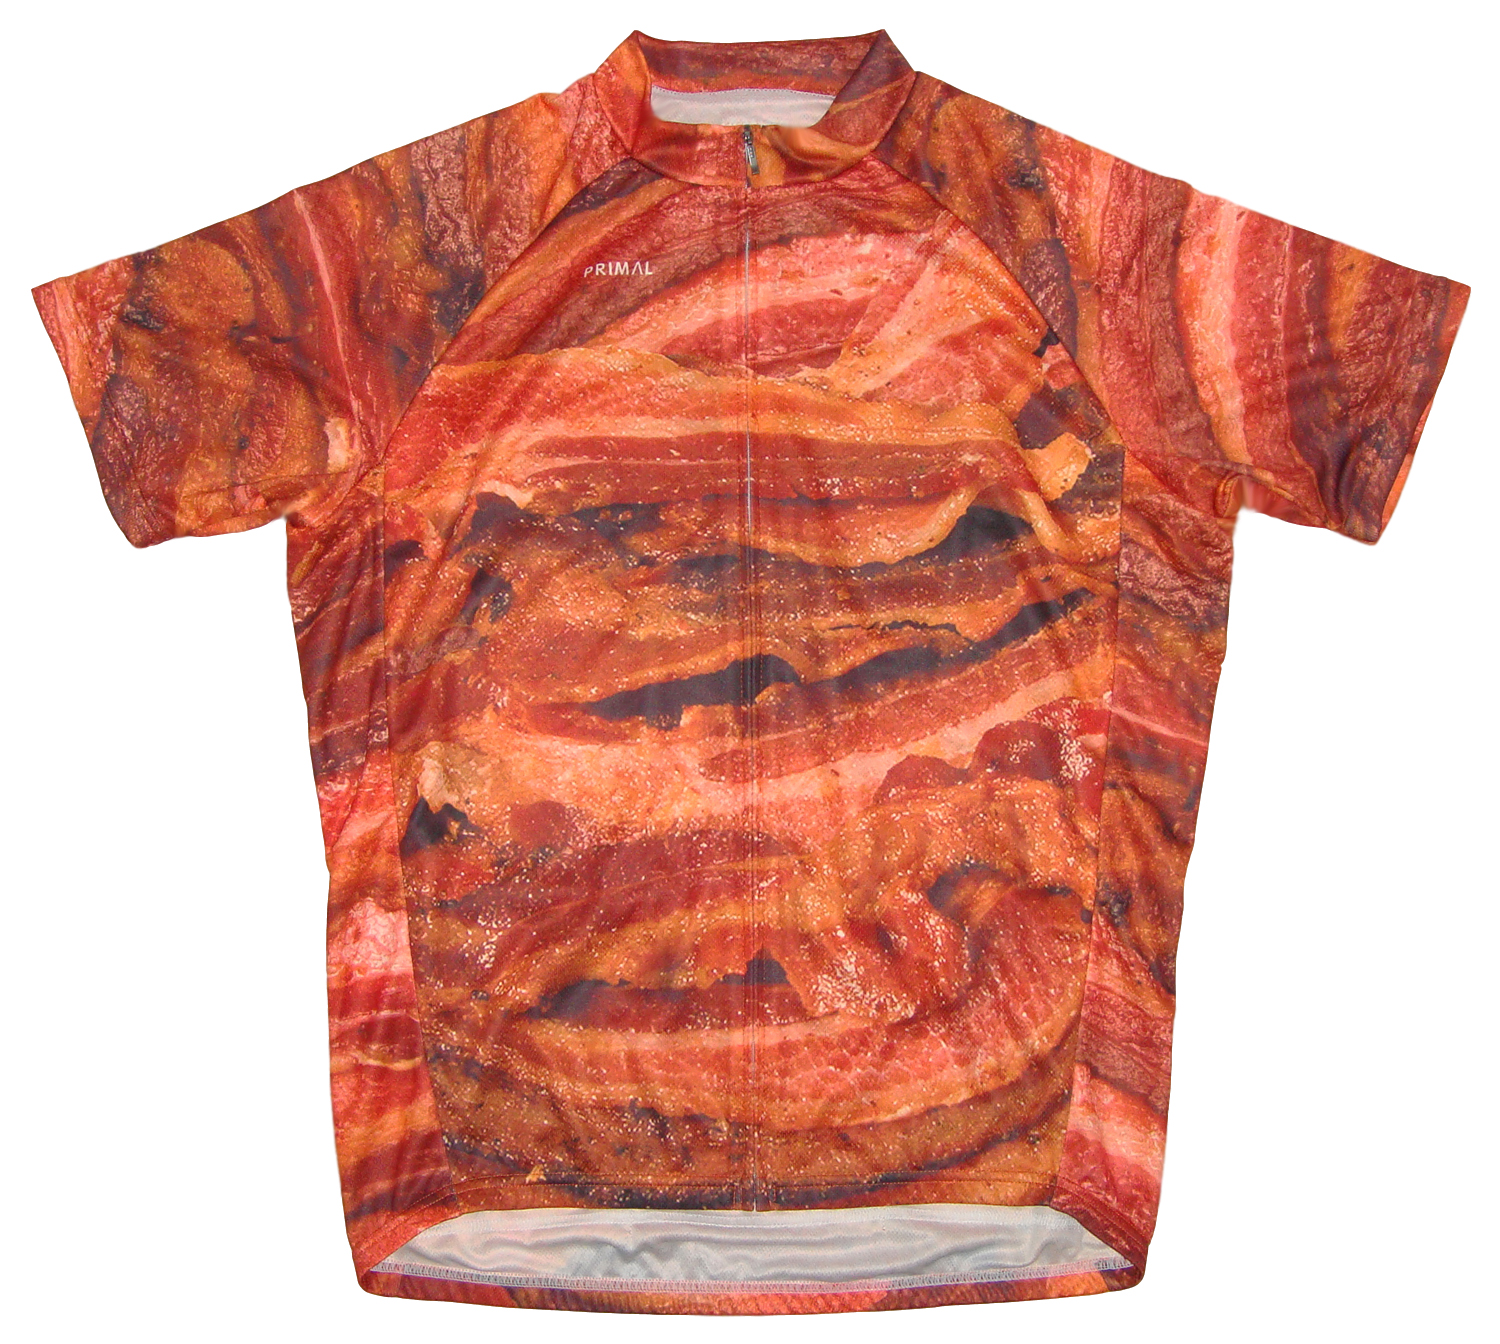 ce14f9df1 Primal Wear Bacon Cycling Jersey Mens short sleeve bicycle bike with DeFeet  sox